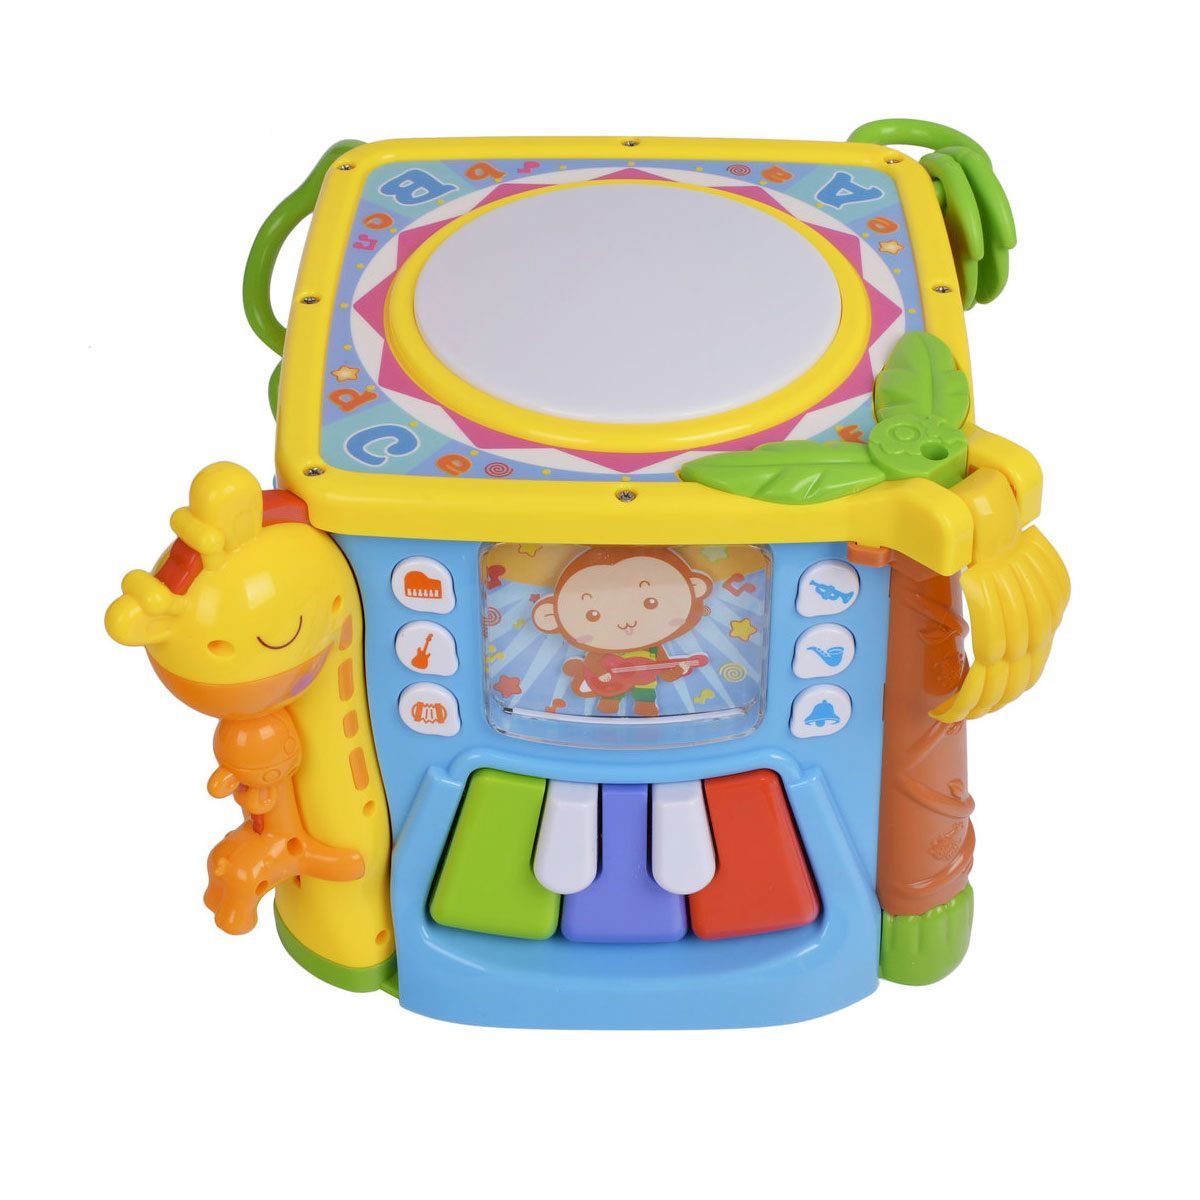 The Venture Turn & Learn play cube includes a musical side